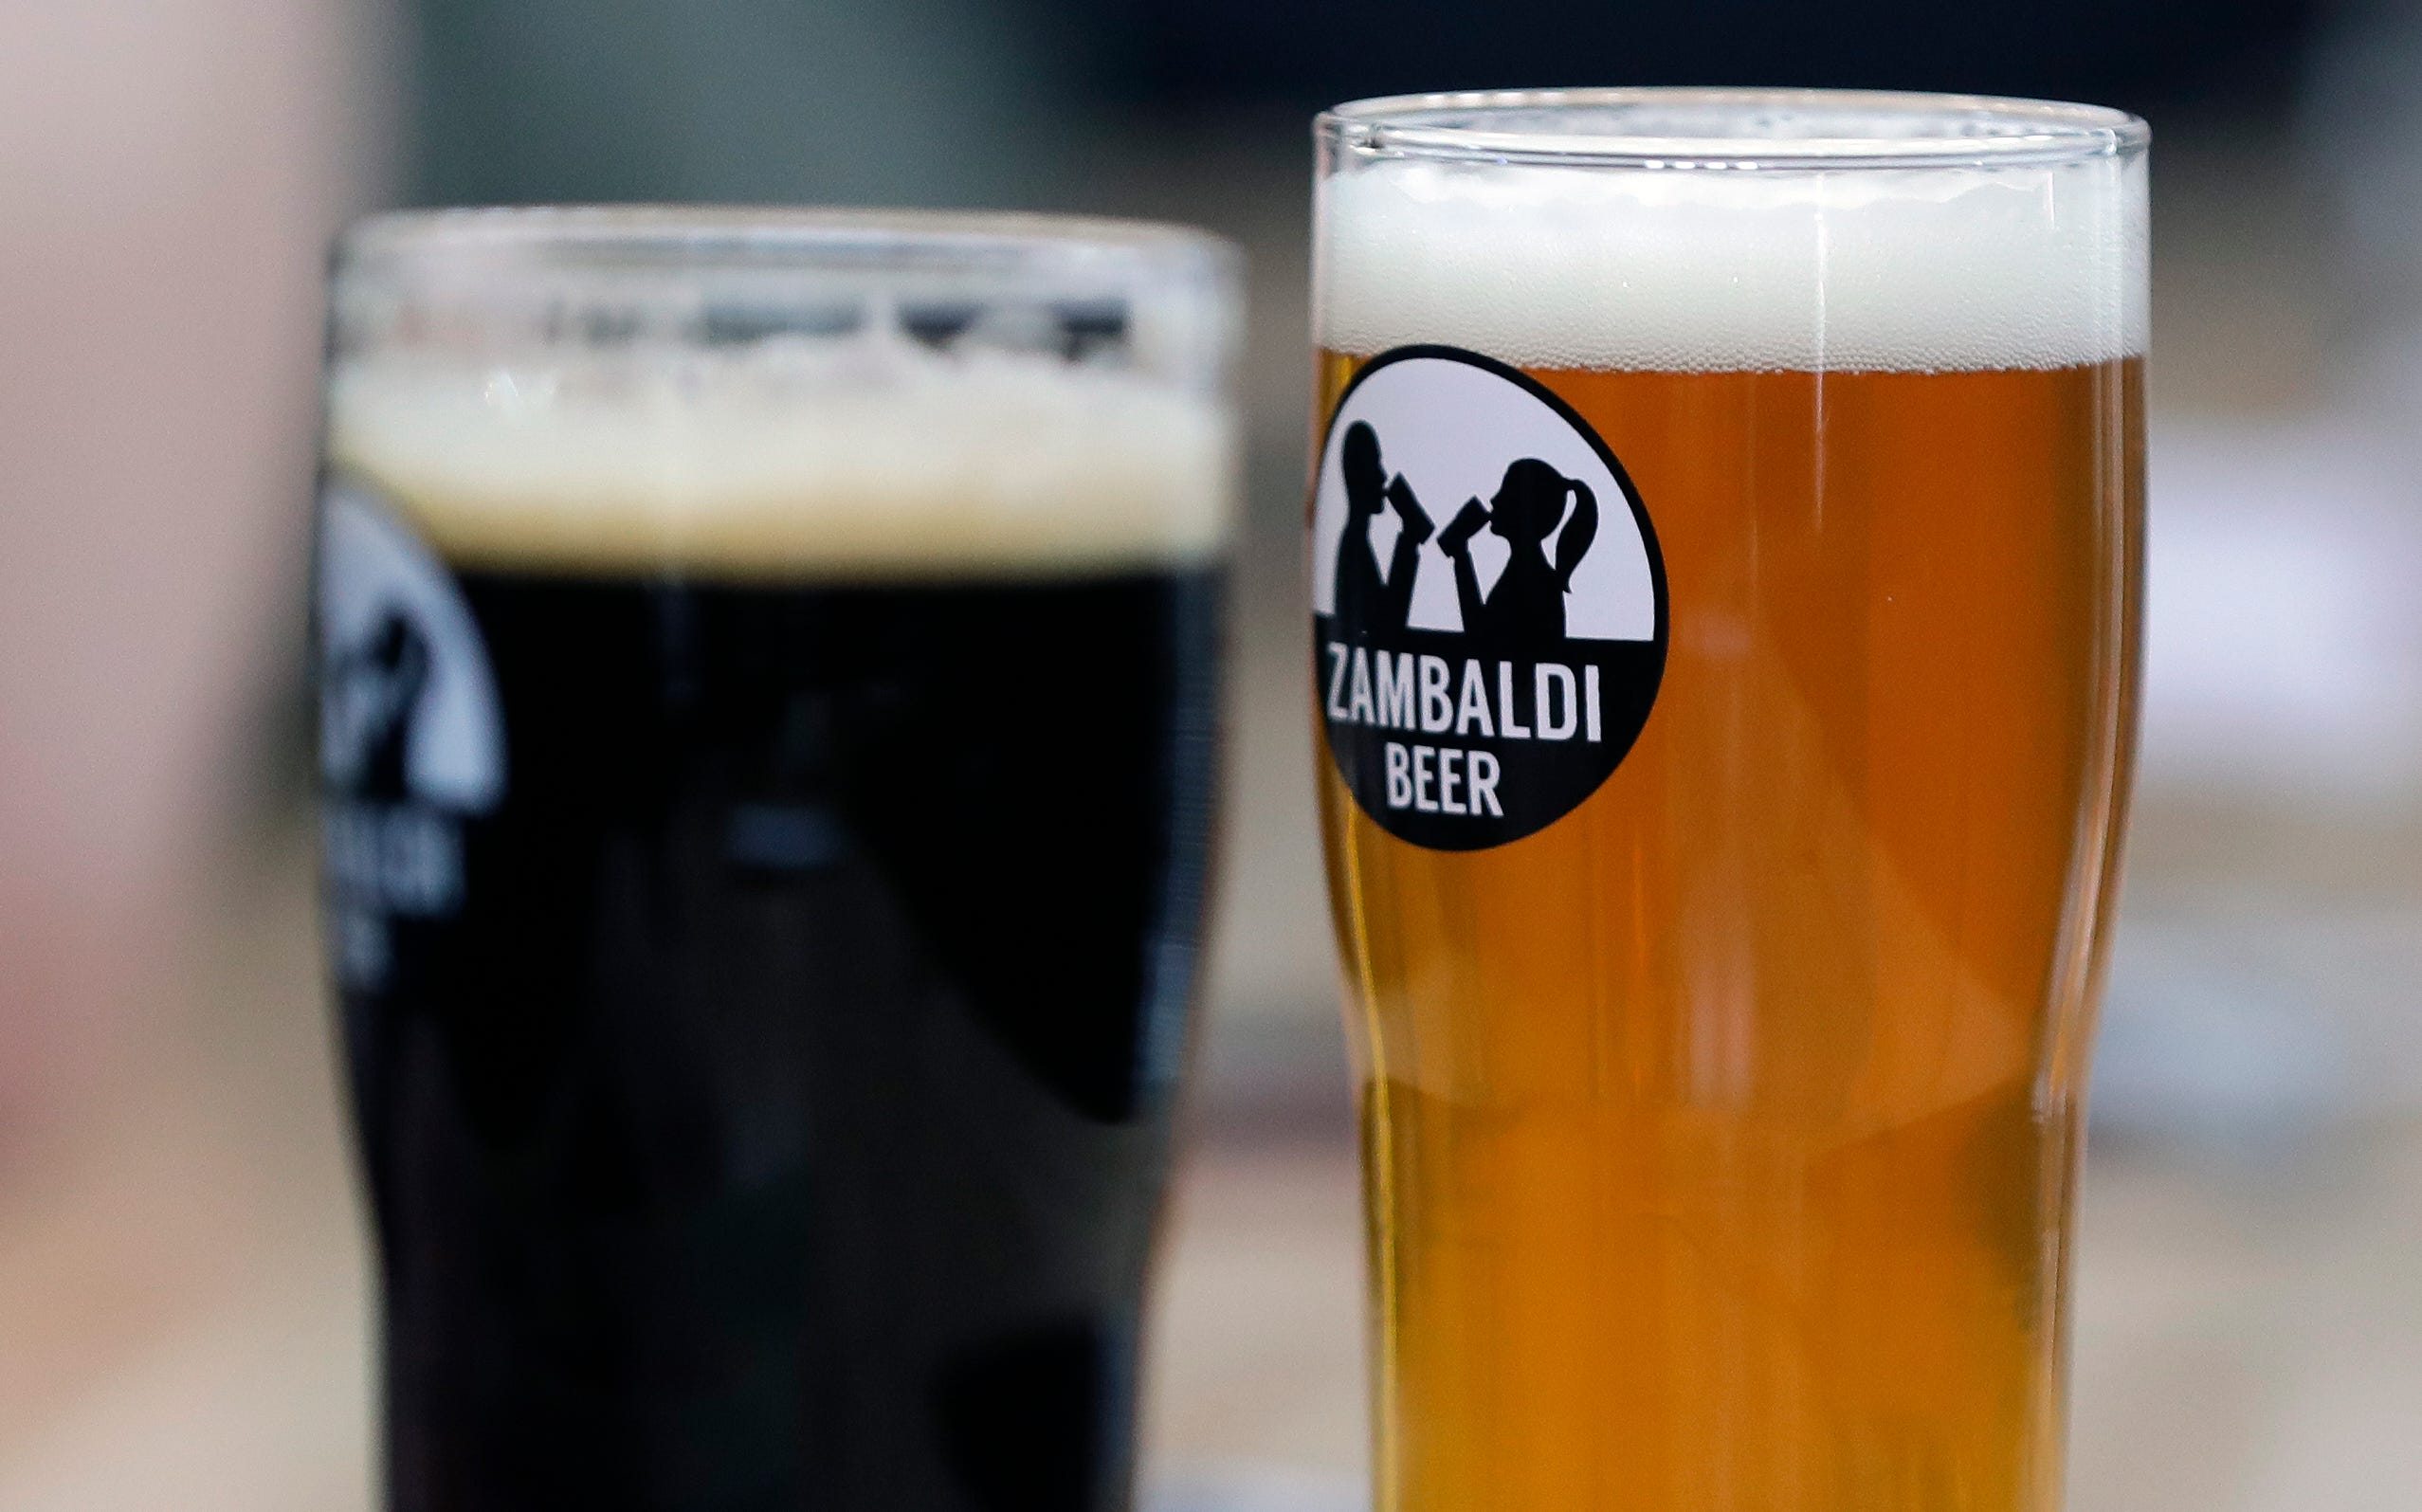 """""""At the end of the day, it's just beer. It's not brain surgery. Have a beer.""""  - David Malcolm, Zambaldi Beer brewer and owner"""